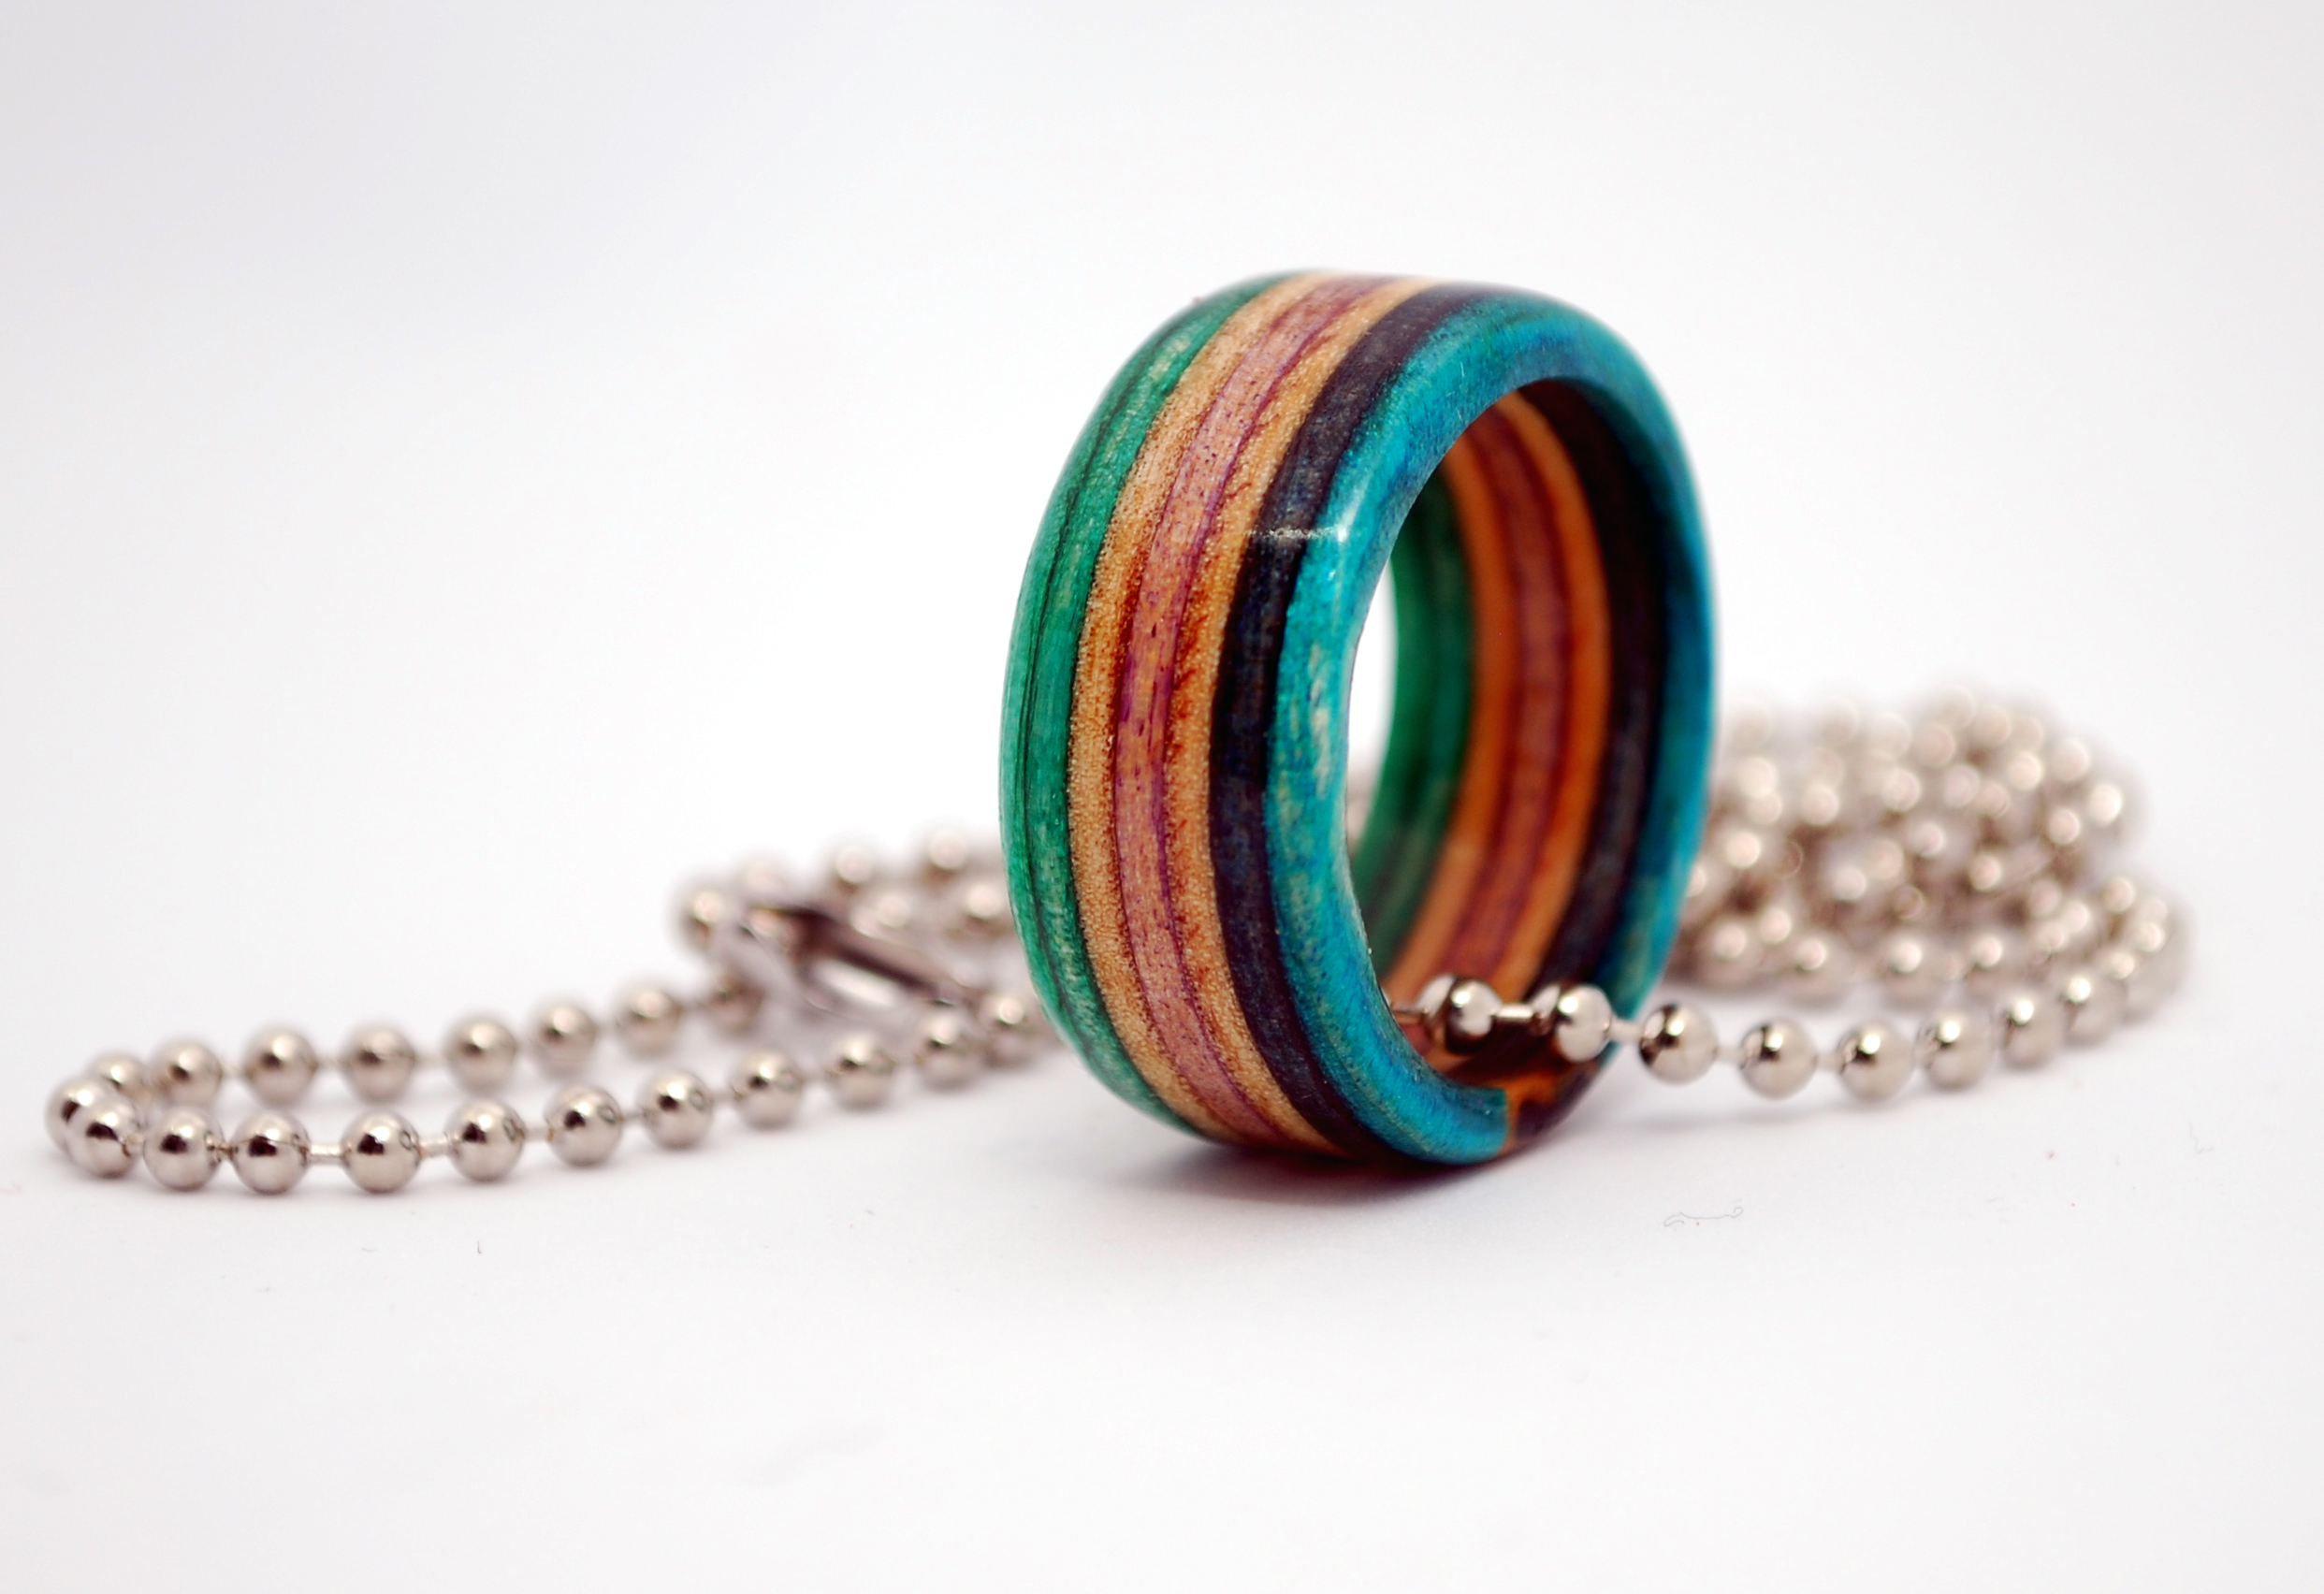 b7b7cb8ad80 Recycled Skate Ring + Necklace Chain - Recycled Skateboard Ring